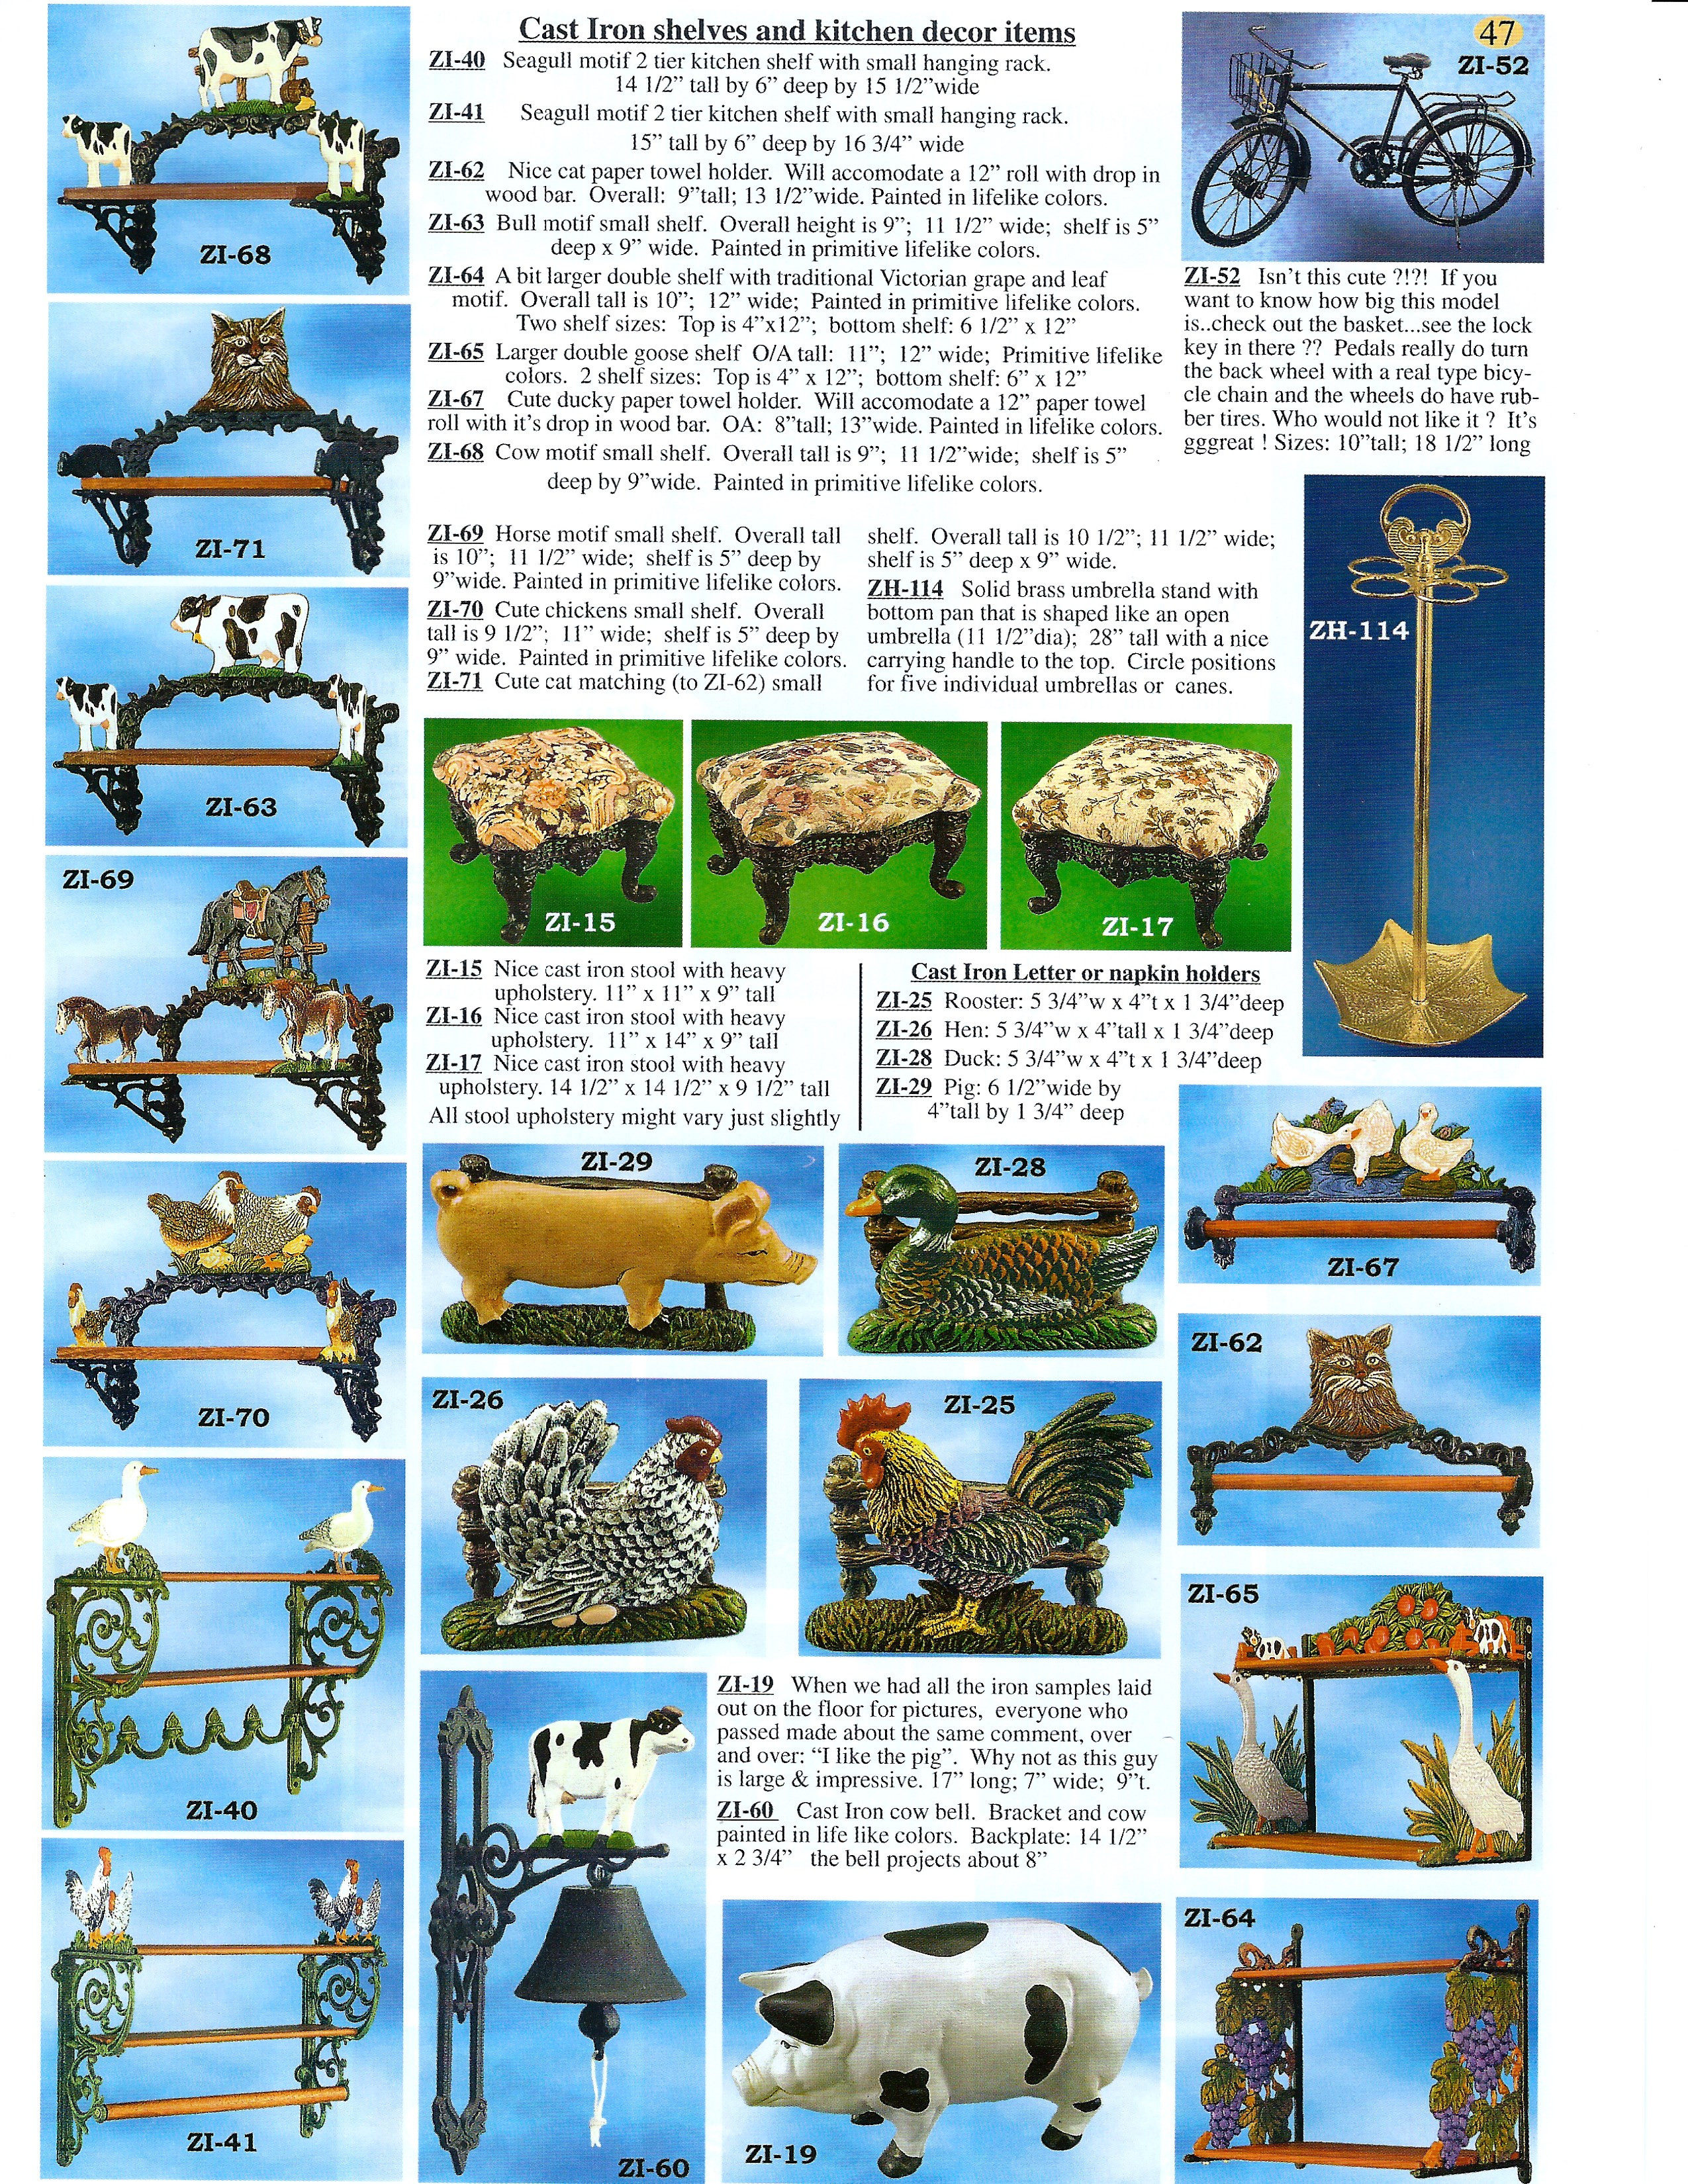 Catalog page 71